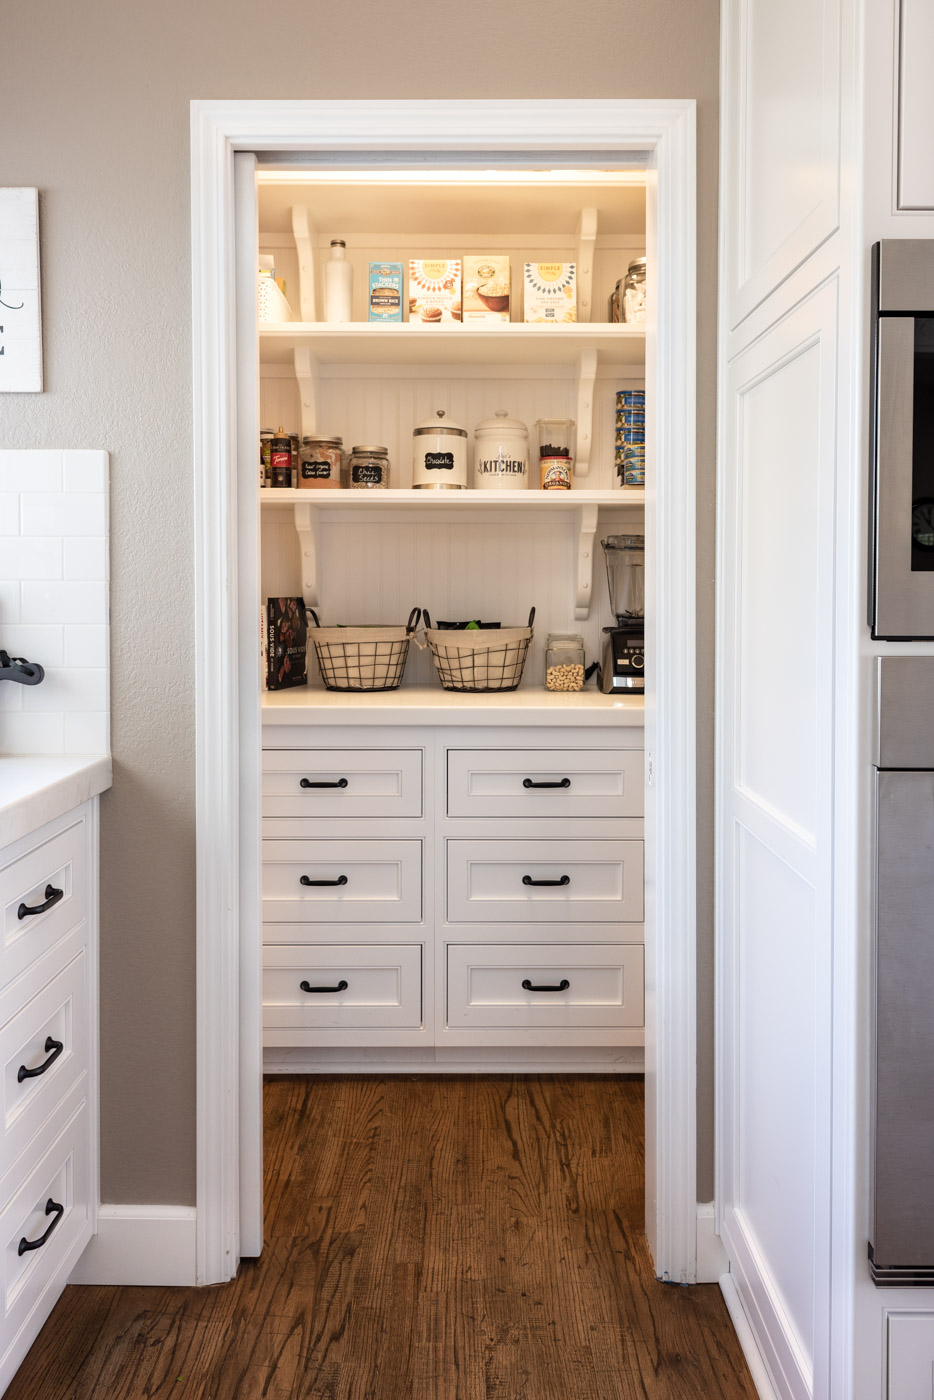 Transitional Country Cottage style kitchen with white painted cabinets and custom pantry storage